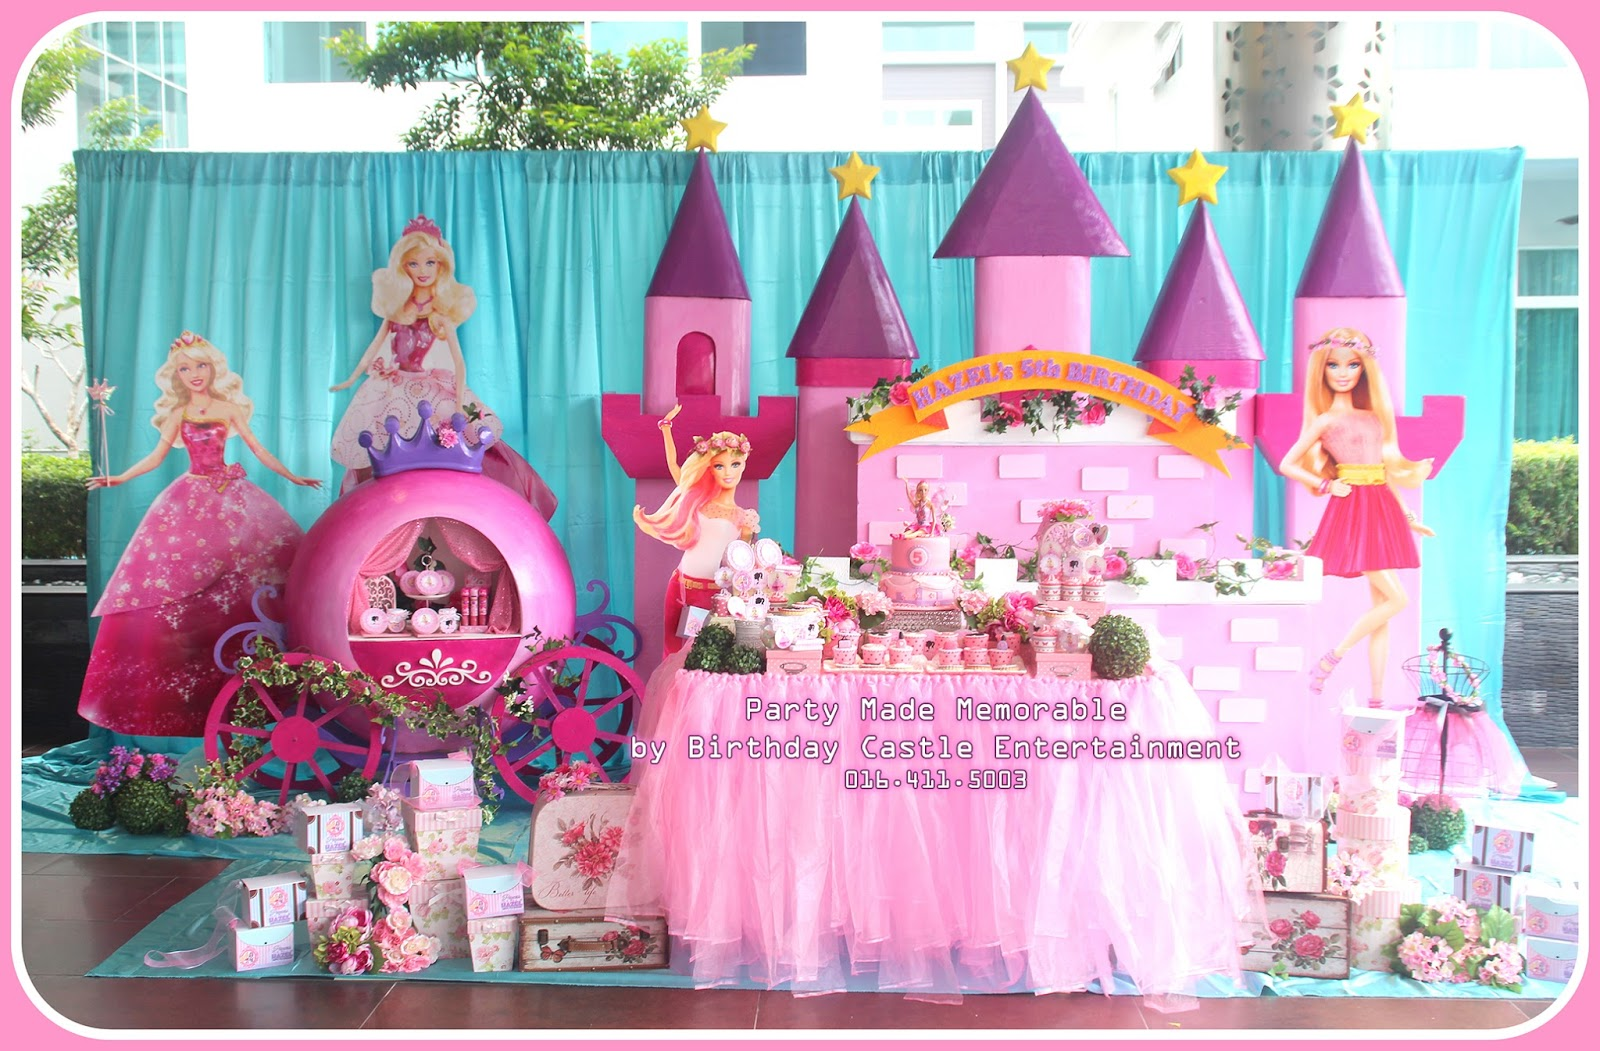 birthday castle entertainment ©: services